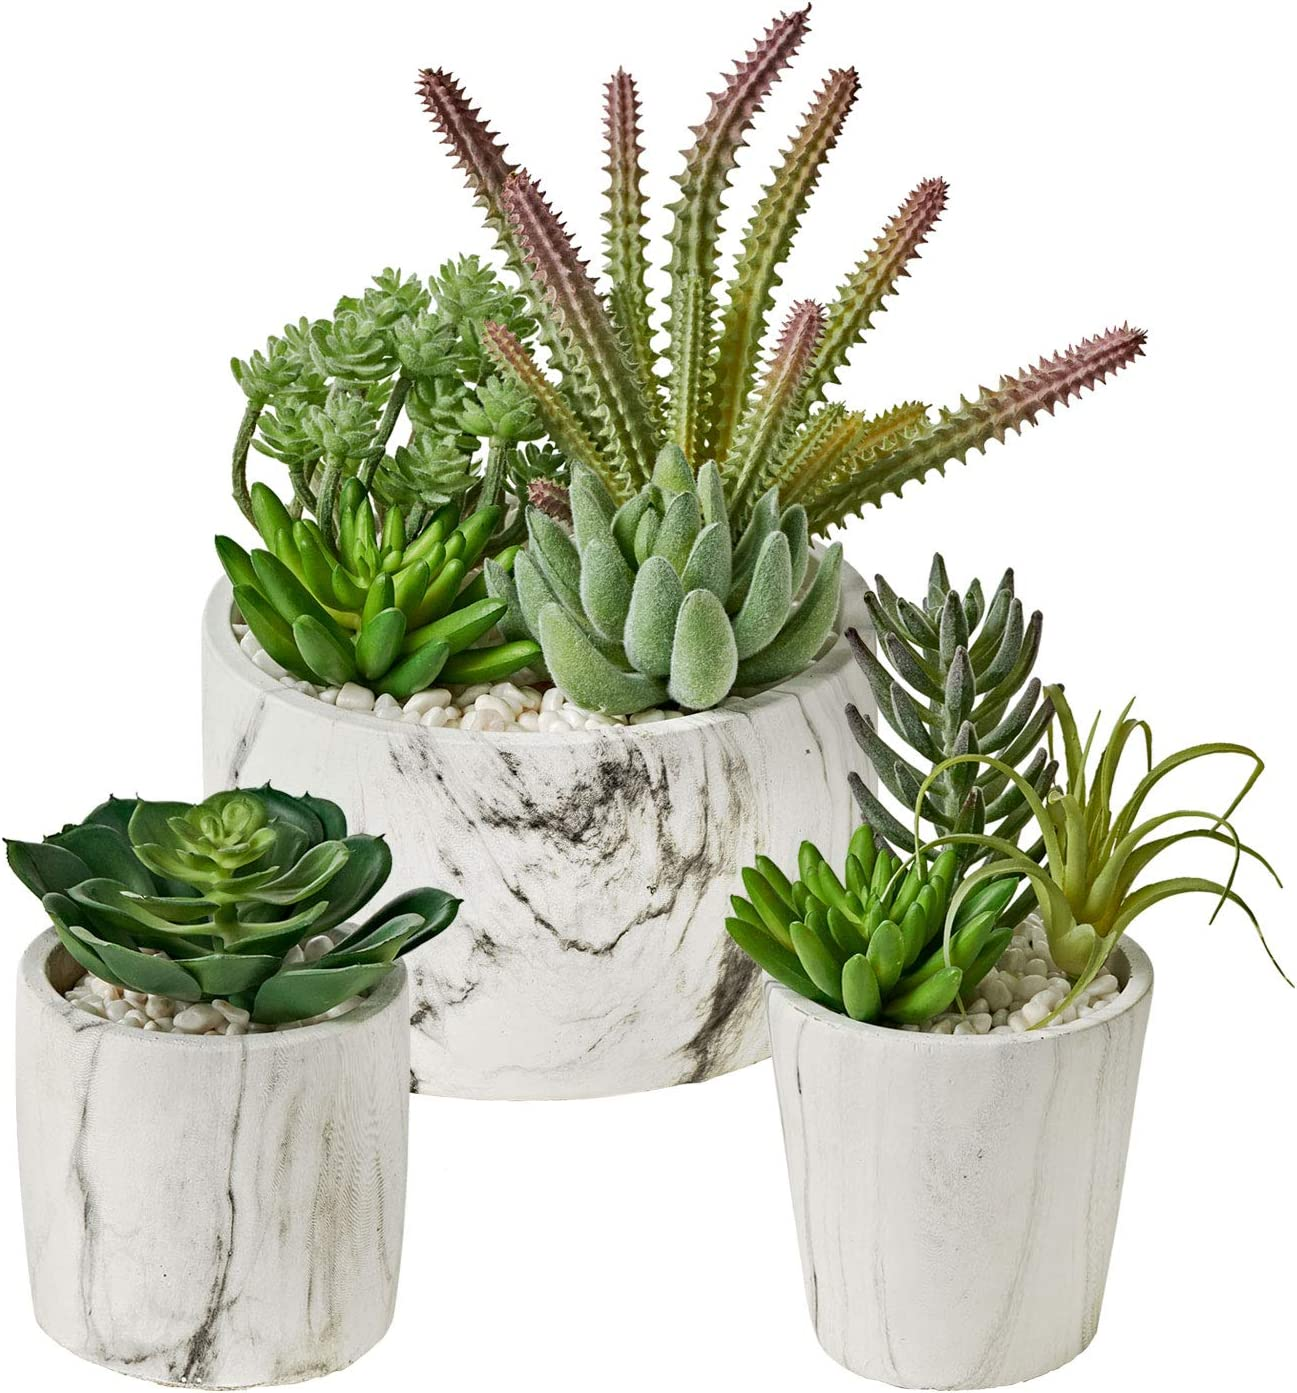 MOTINI Artificial Succulent Plants Set of 3 Fake Succulent Plants in Pots Faux Plant Succulent Decor for Home and Office